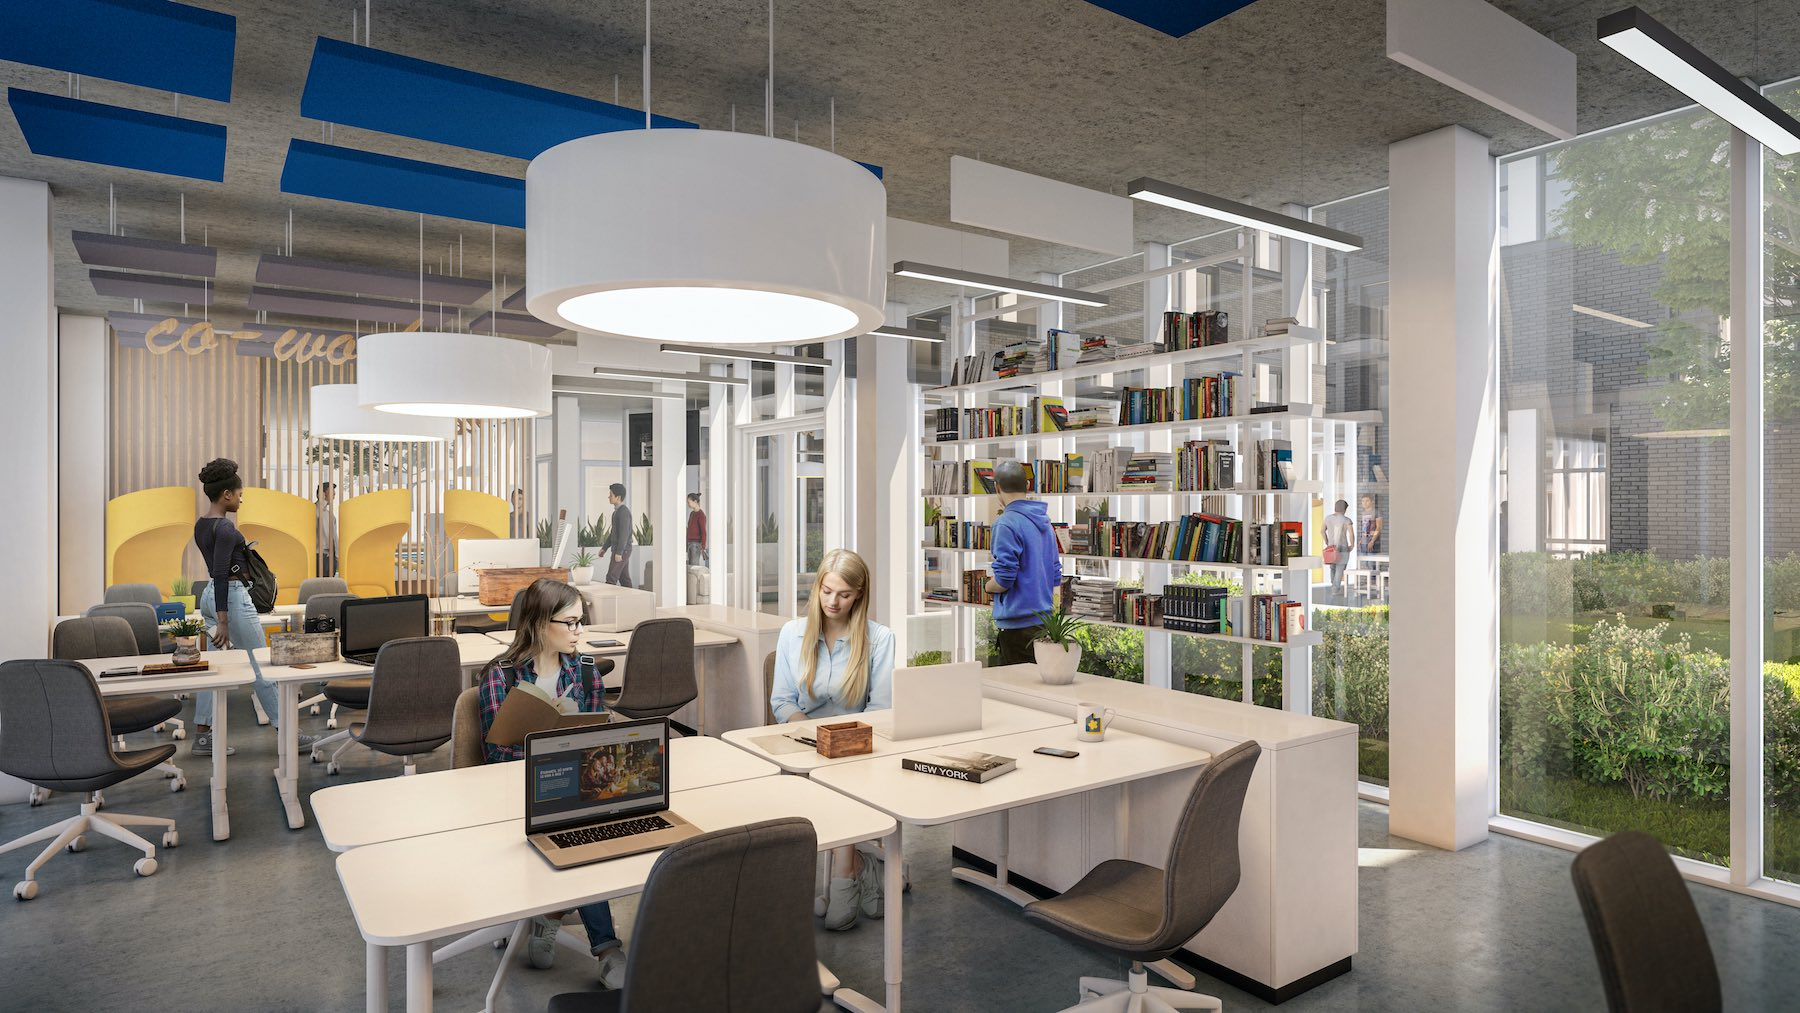 Location STUDENT FACTORY - LILLE EURATECHNOLOGIES - Lille (59800)